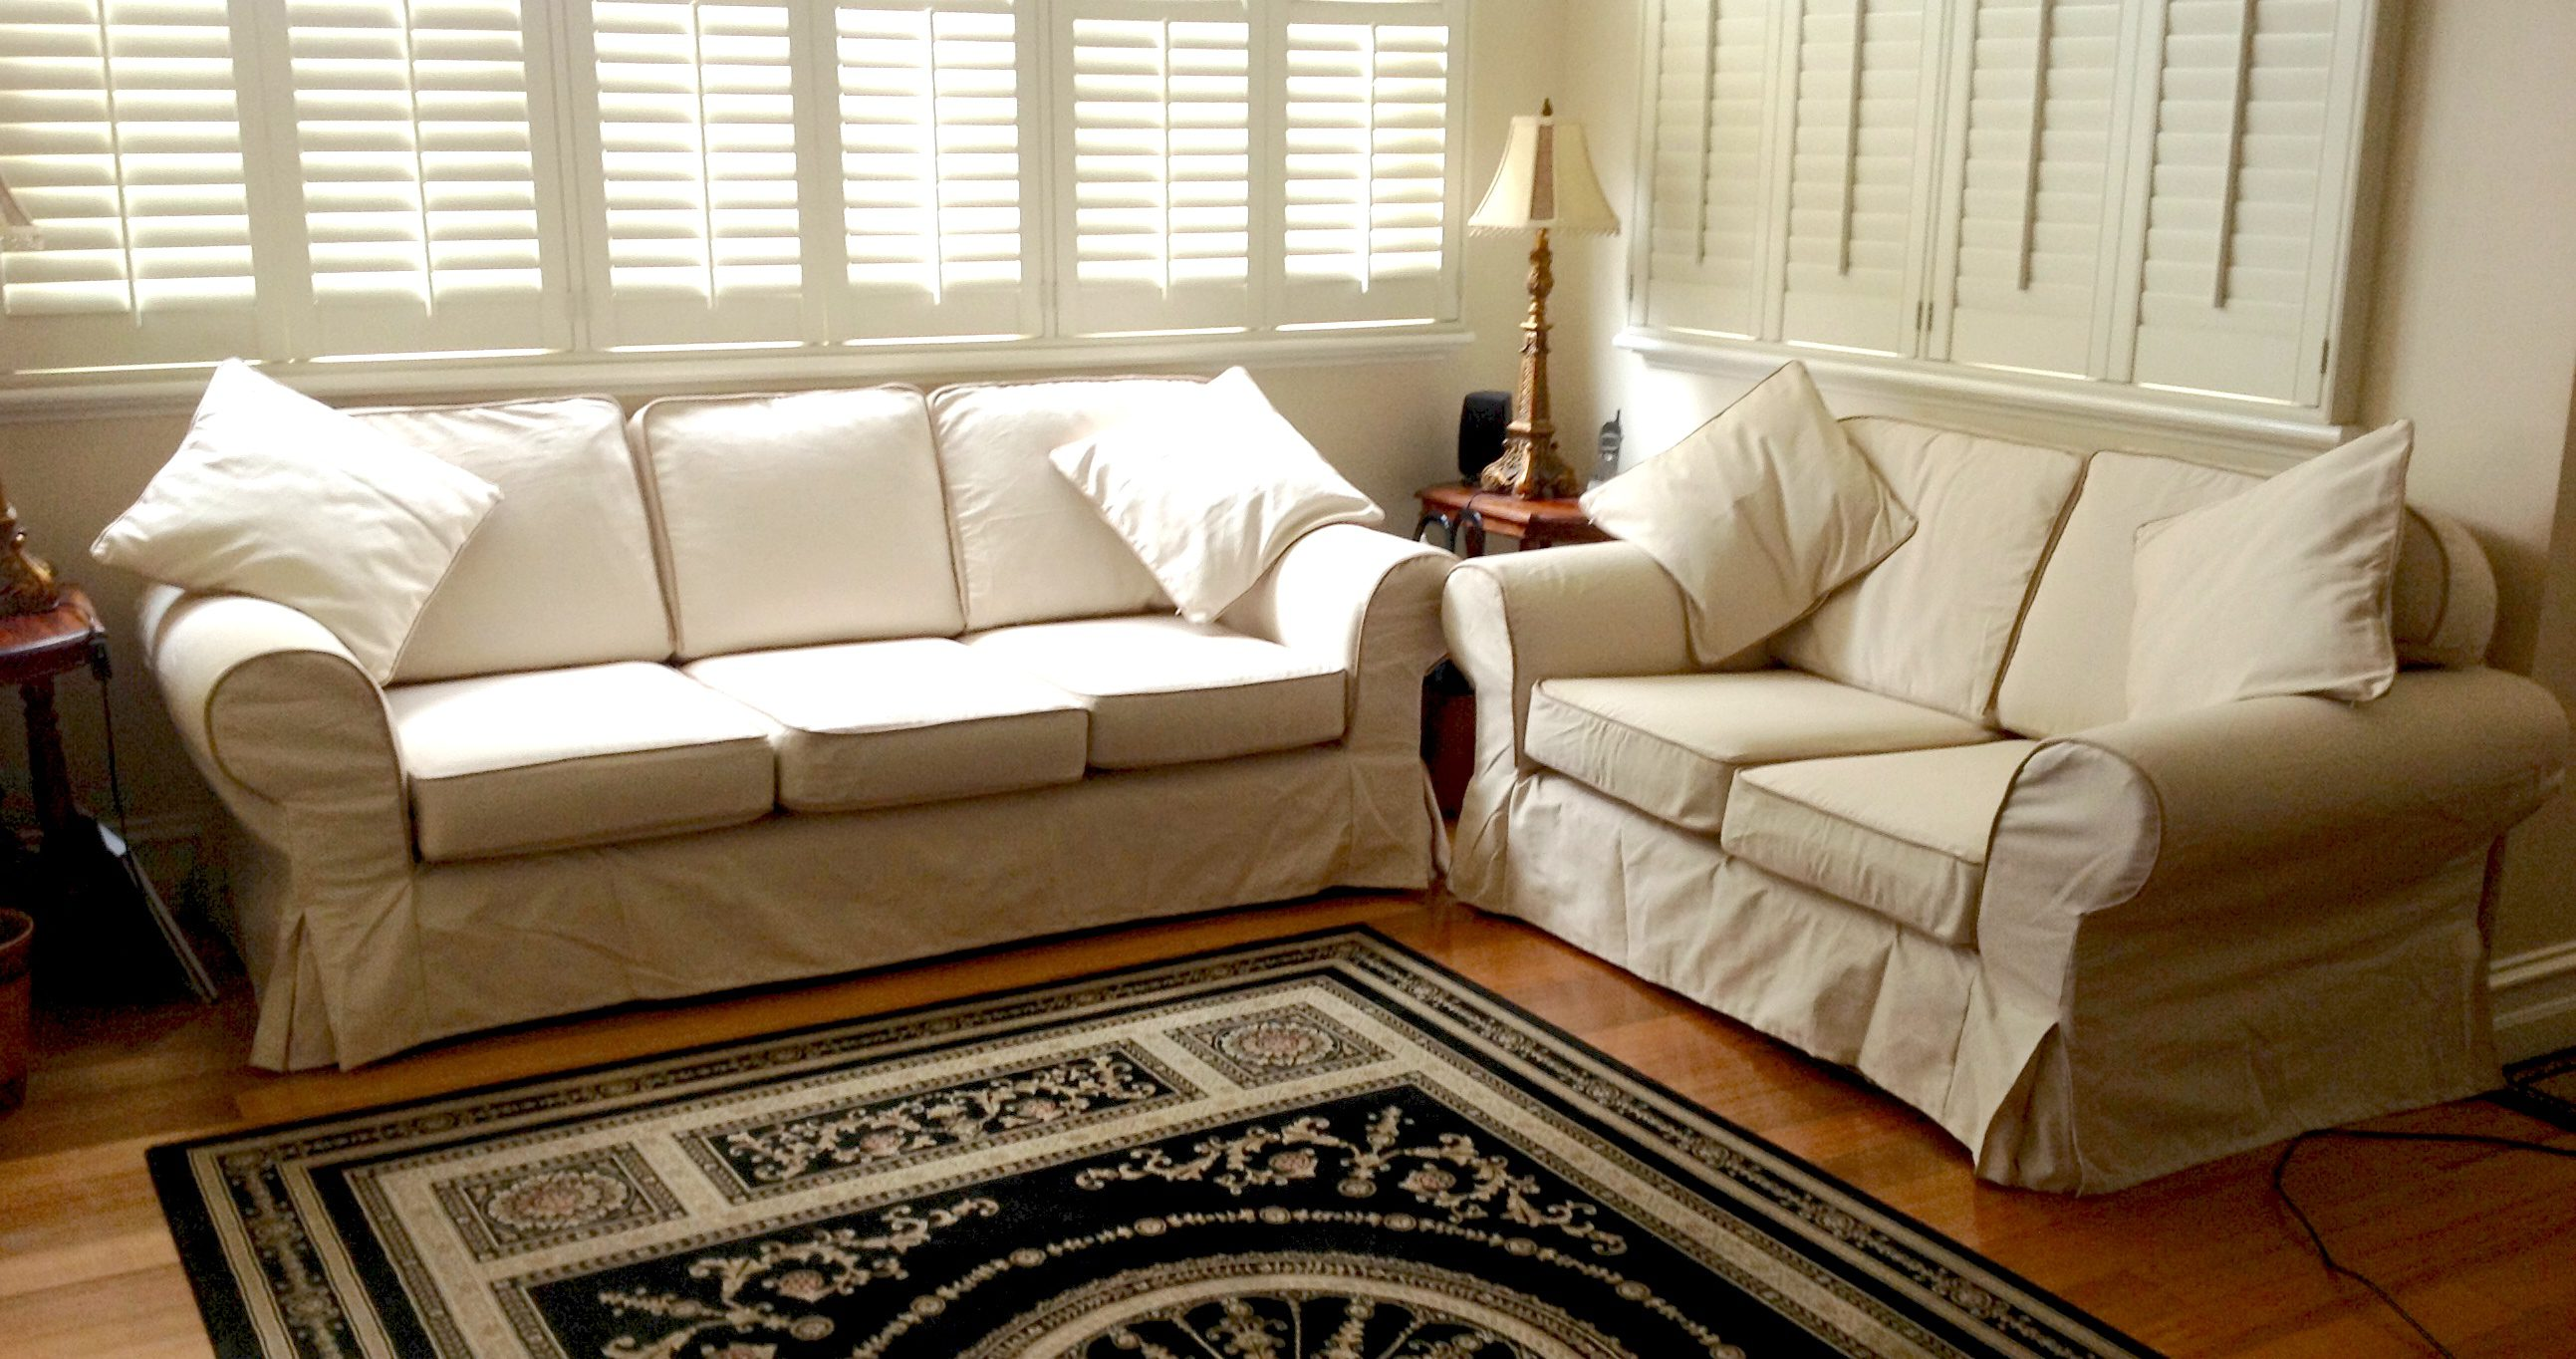 Australian Made Sofas Custom Slipcovers And Couch Cover For Any Sofa Online